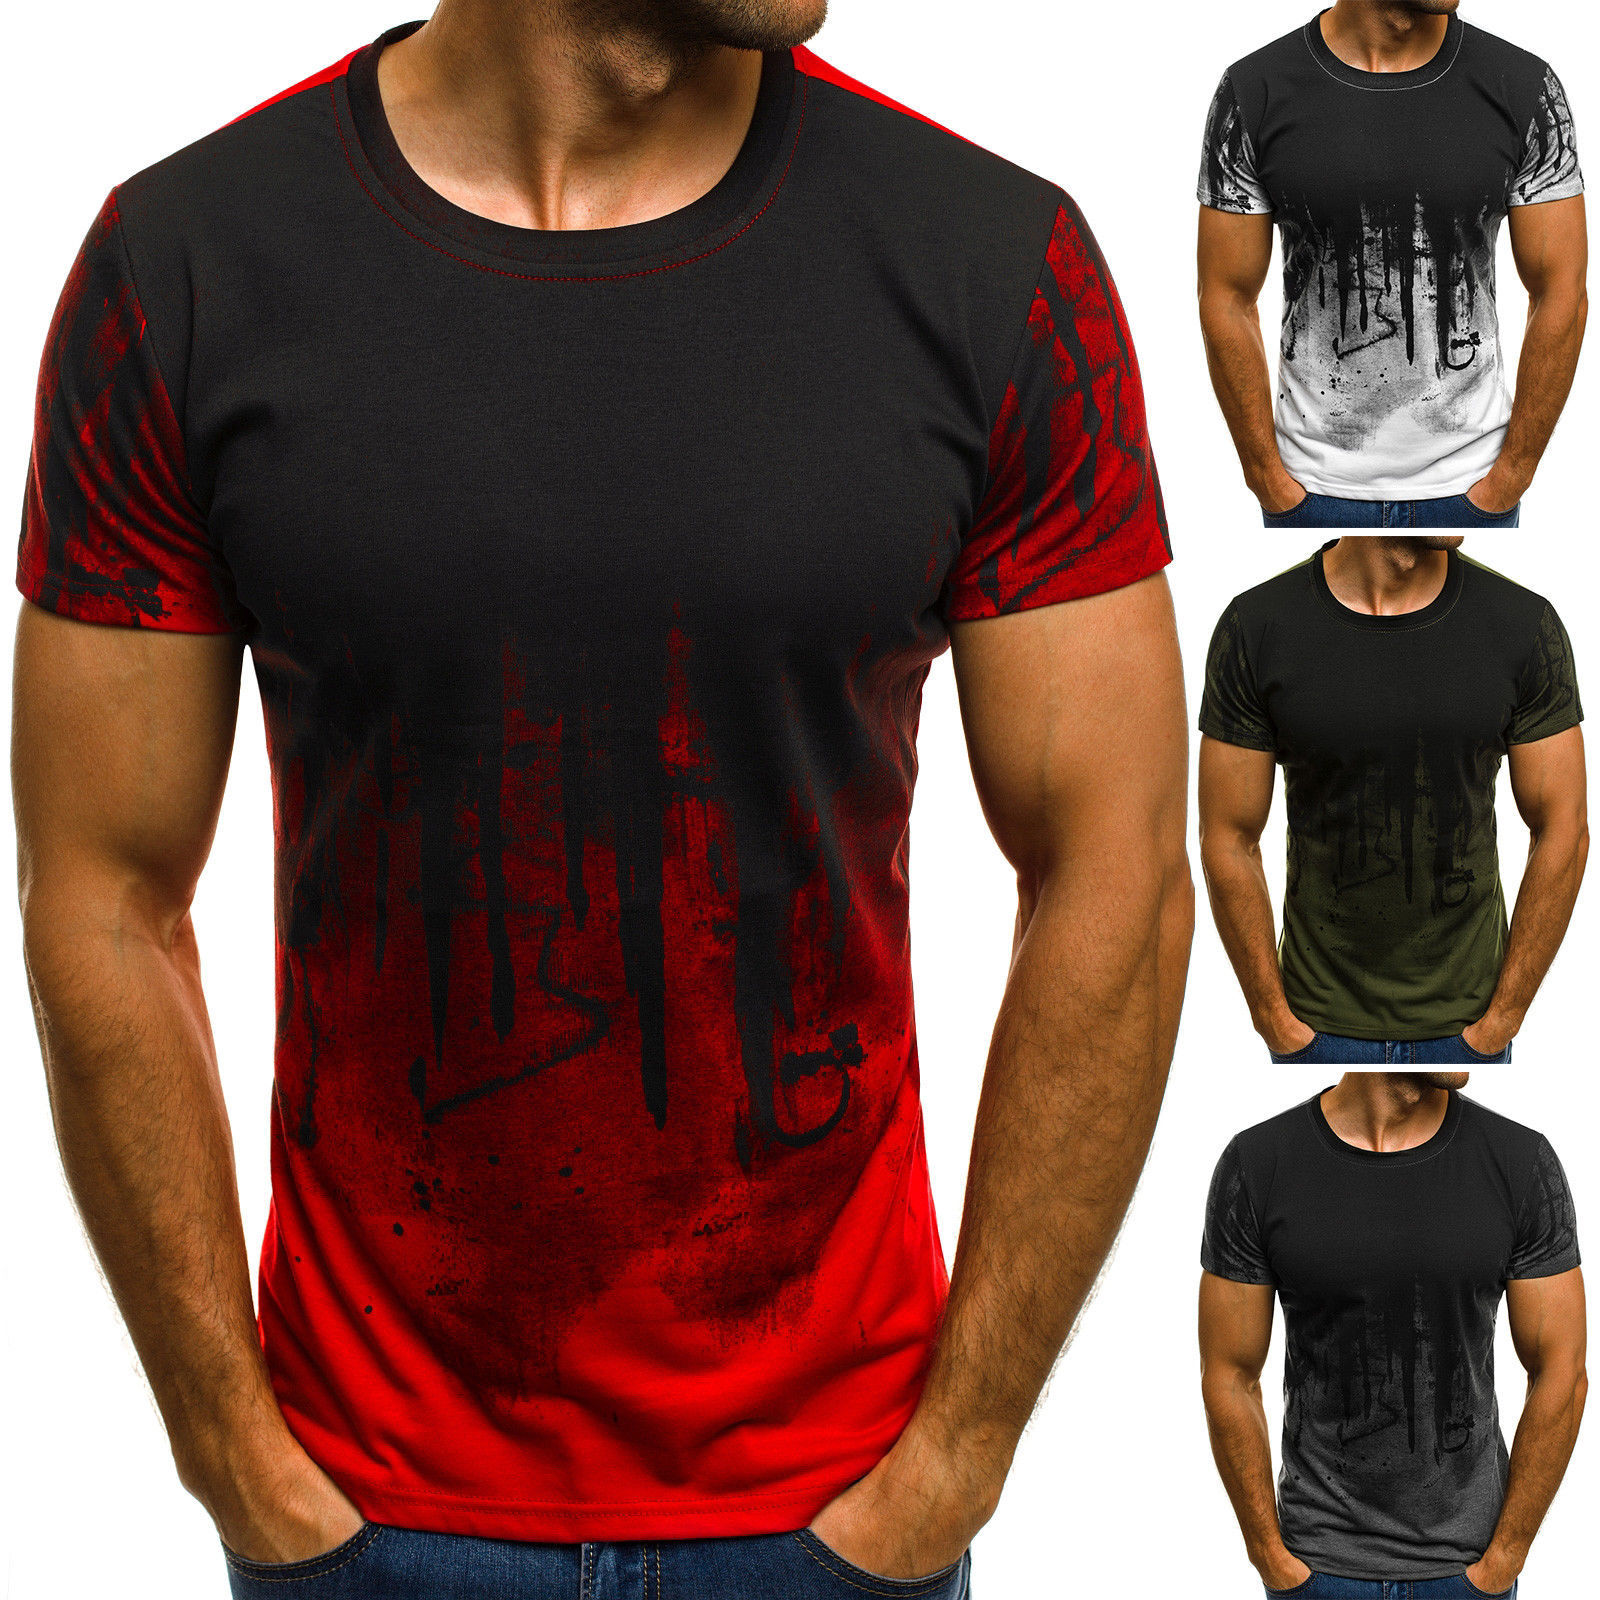 E-BAIHUI Men Fitness Compression   T  -  Shirt   Casual cotton Black and red gradient High quality Slim   shirt   Men Fashion Tee tops CG002